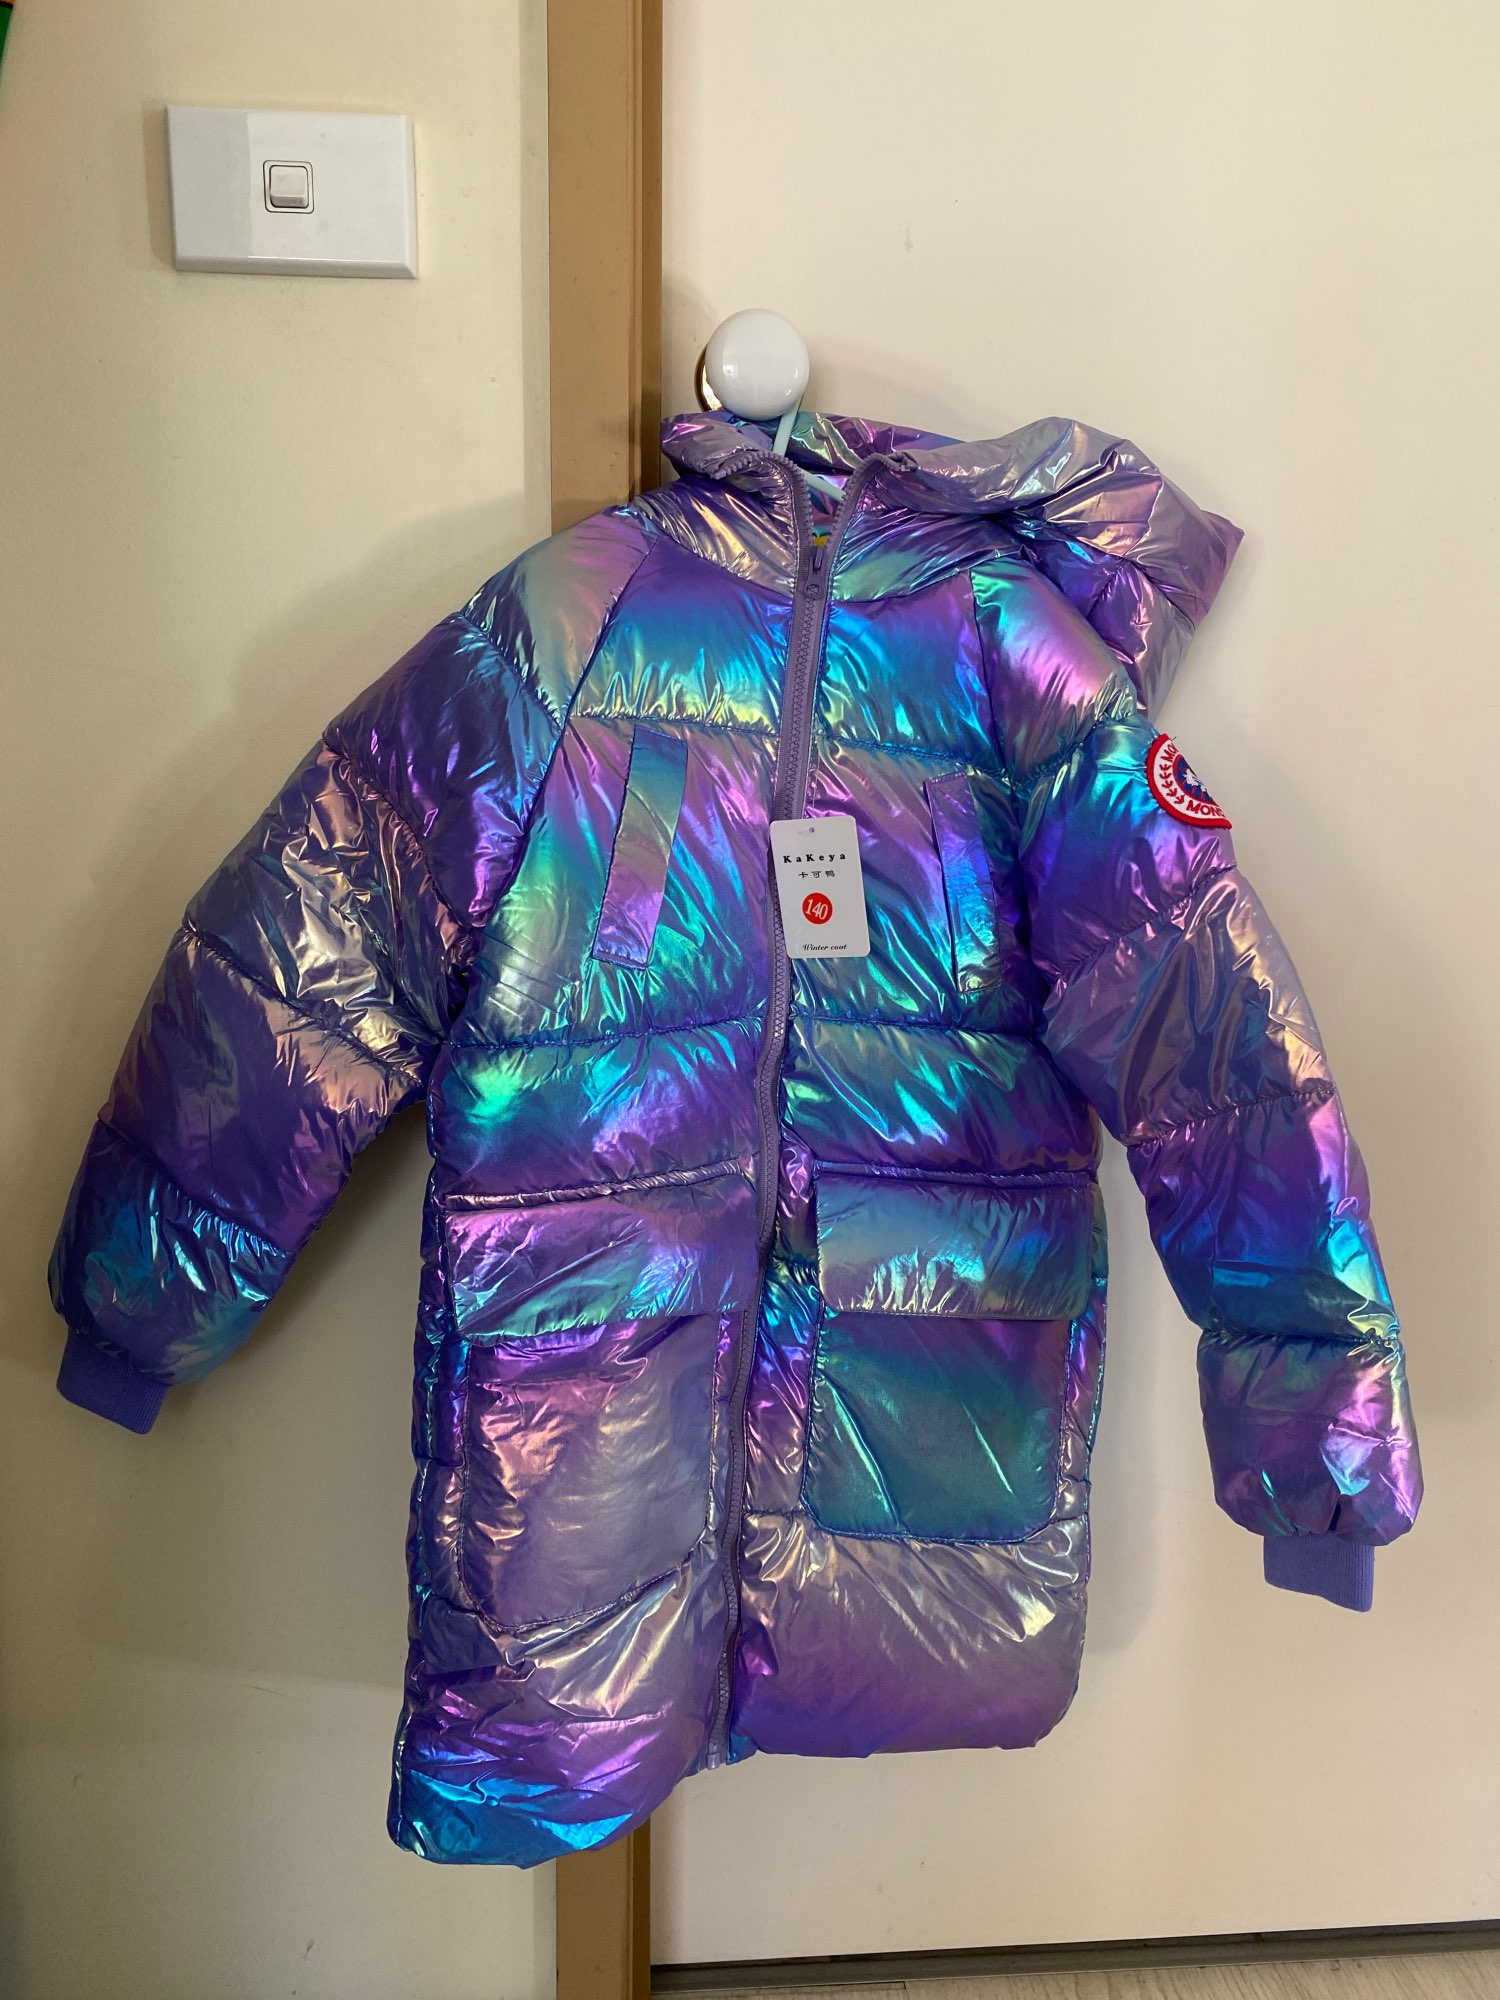 Love the jacket. I wish they have adults size:)